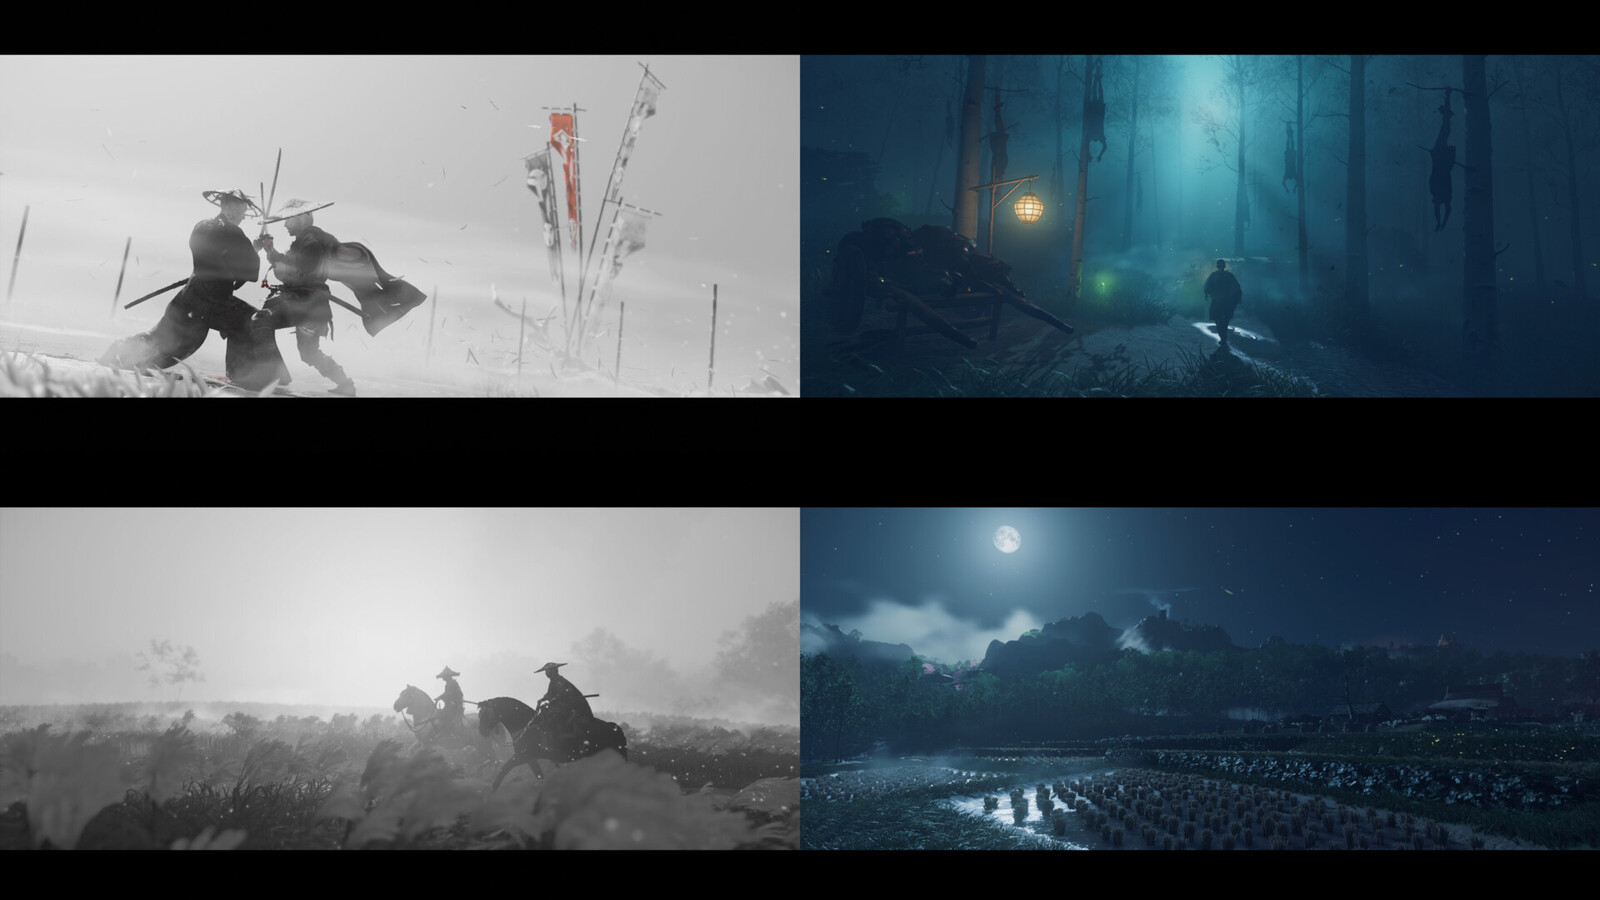 screen shots used for the artwork captured by Fredrik Magnusson